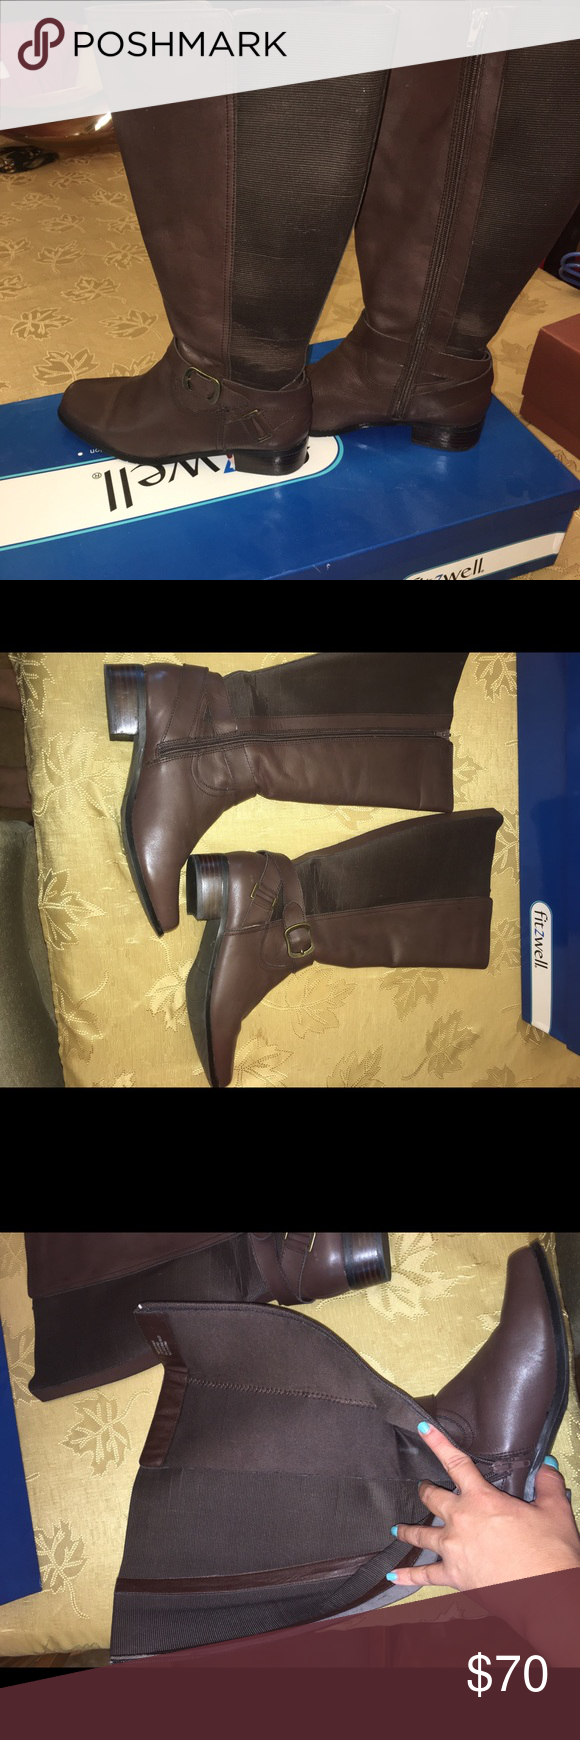 Brown leather wide calf boots Brown leather wide calf boots with stretch panel to fit comfortably. Fits 18 inch calfs very well. Very comfortable. Perfect riding boots to complete any fall or winter outfit. Fitzwell Shoes Heeled Boots